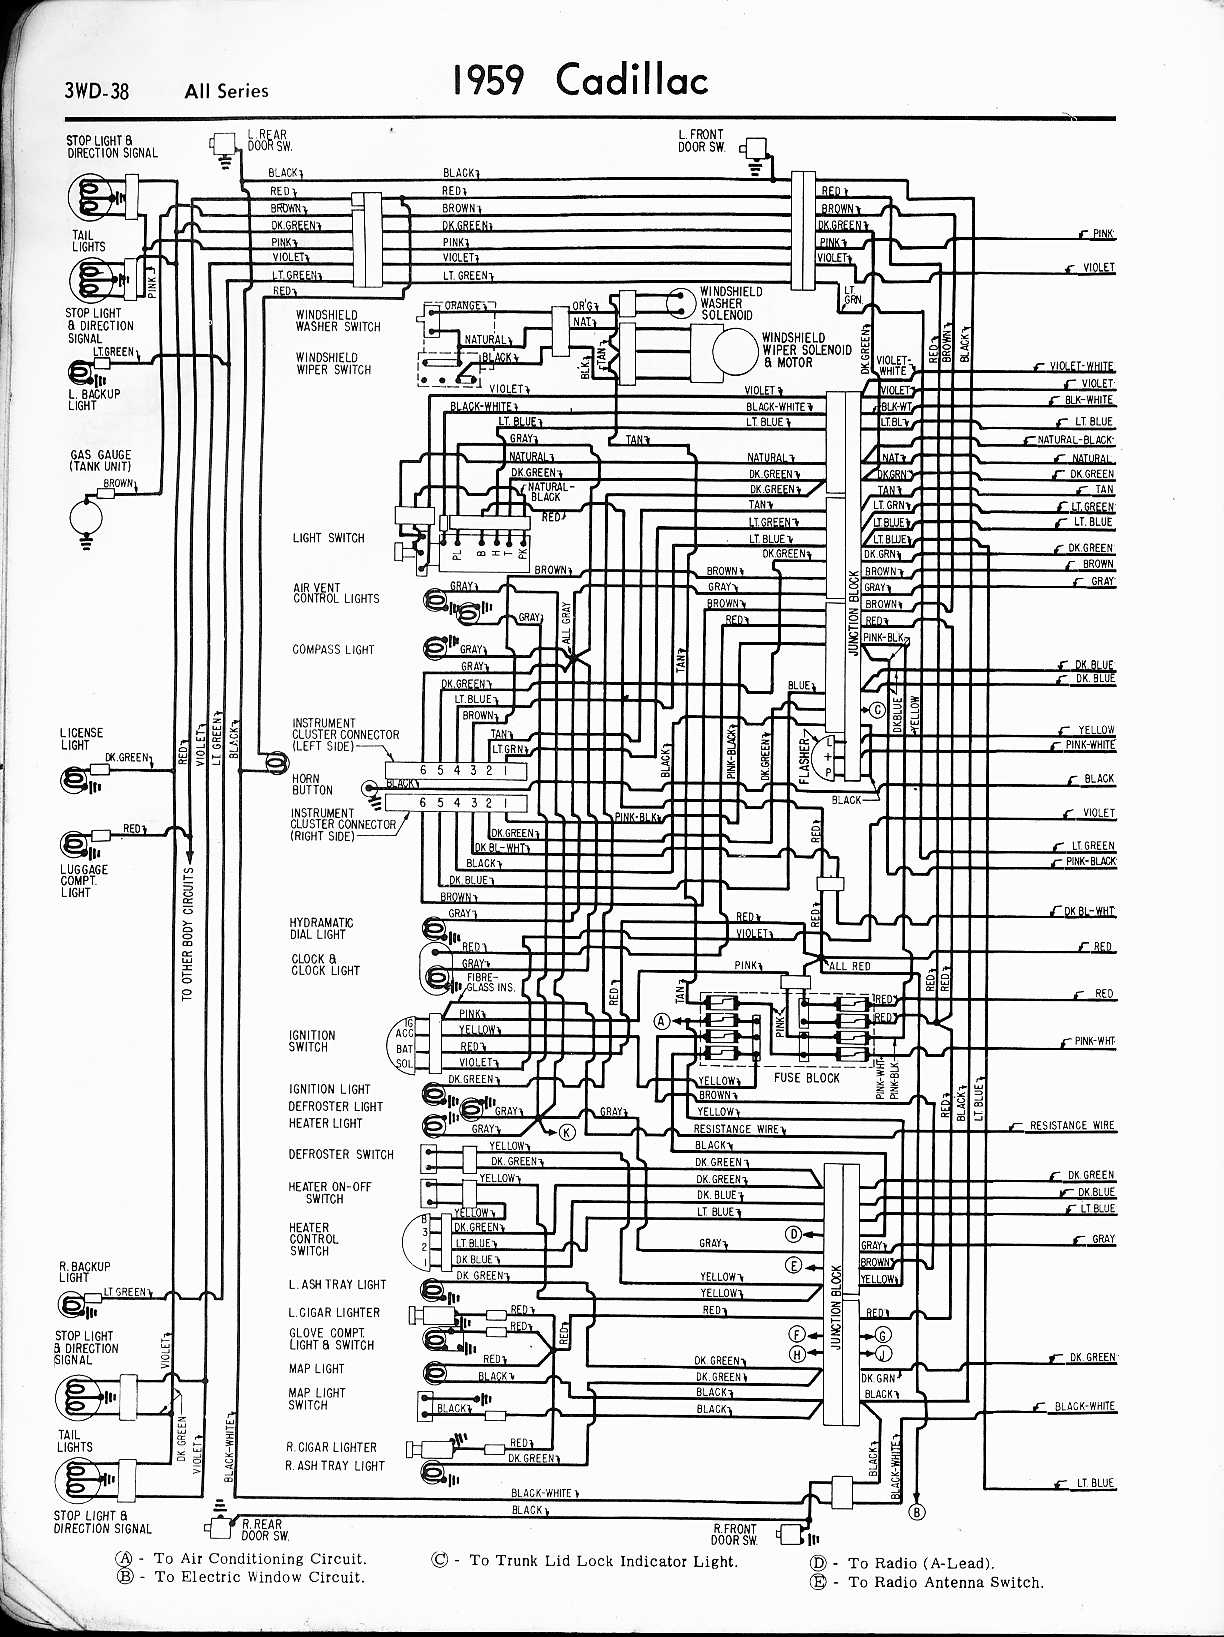 1999 Cadillac Wiring Diagram Will Be A Thing Sts Fuse Box Diagrams 1957 1965 Rh Oldcarmanualproject Com Deville Radio